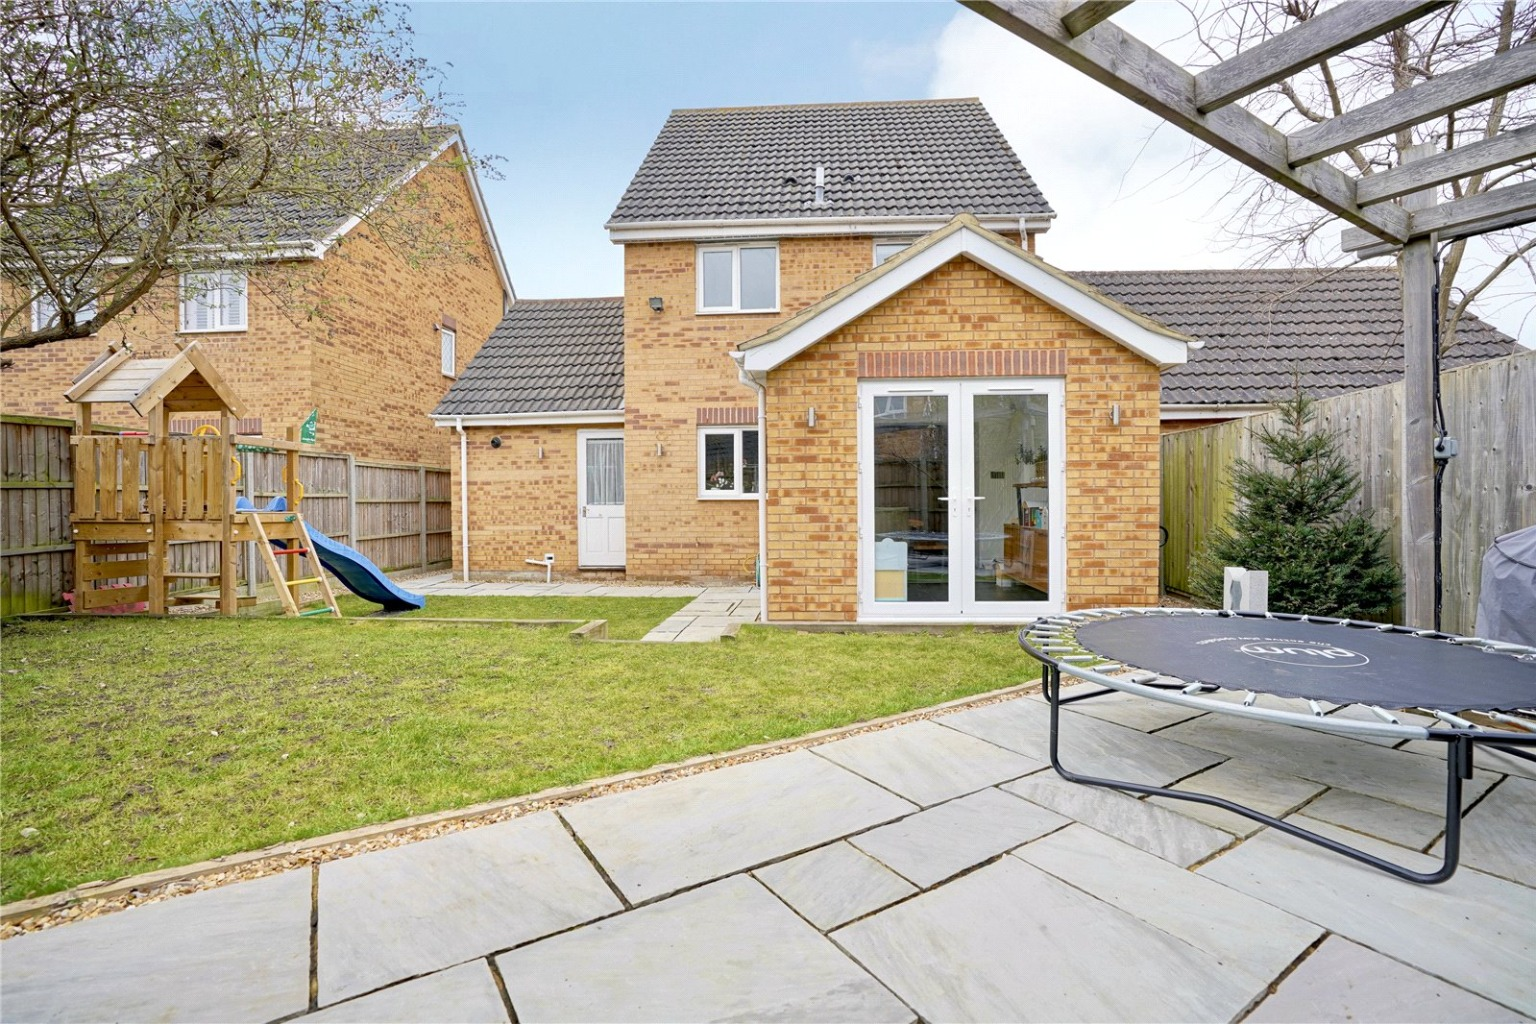 3 bed detached house for sale in Chamberlain Way, St. Neots 11